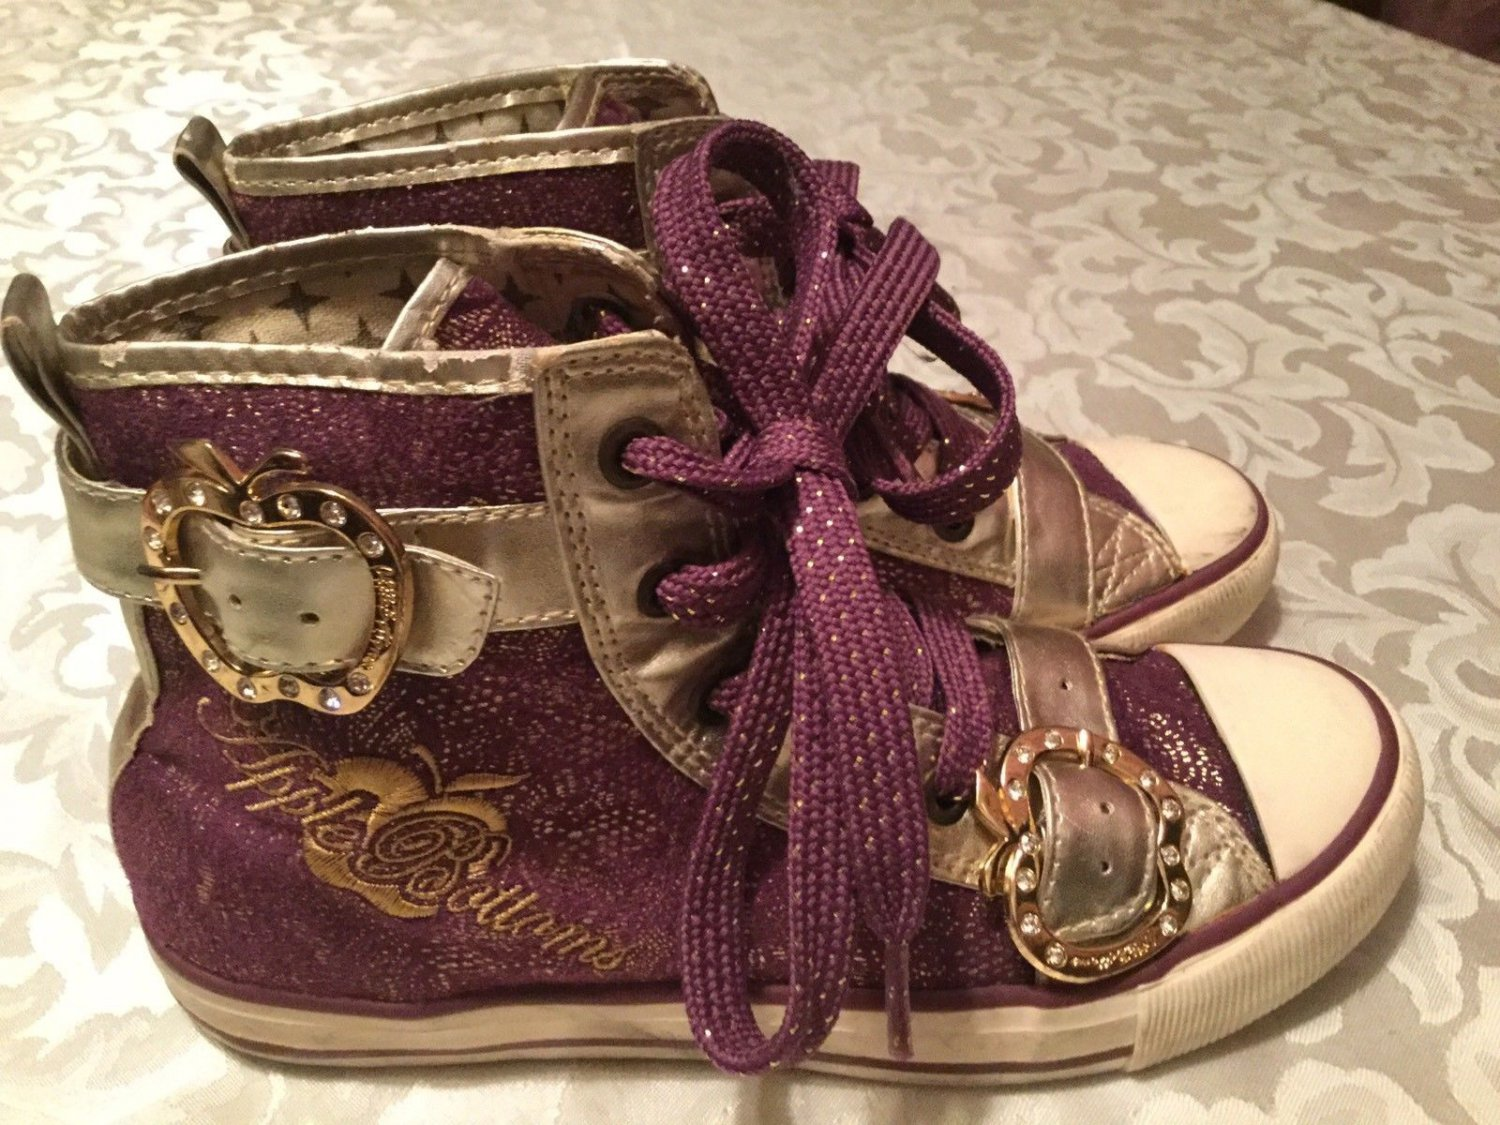 Girls Size 6.5 Apple Bottoms shoes   Kishia purple&gold shoes hi-top